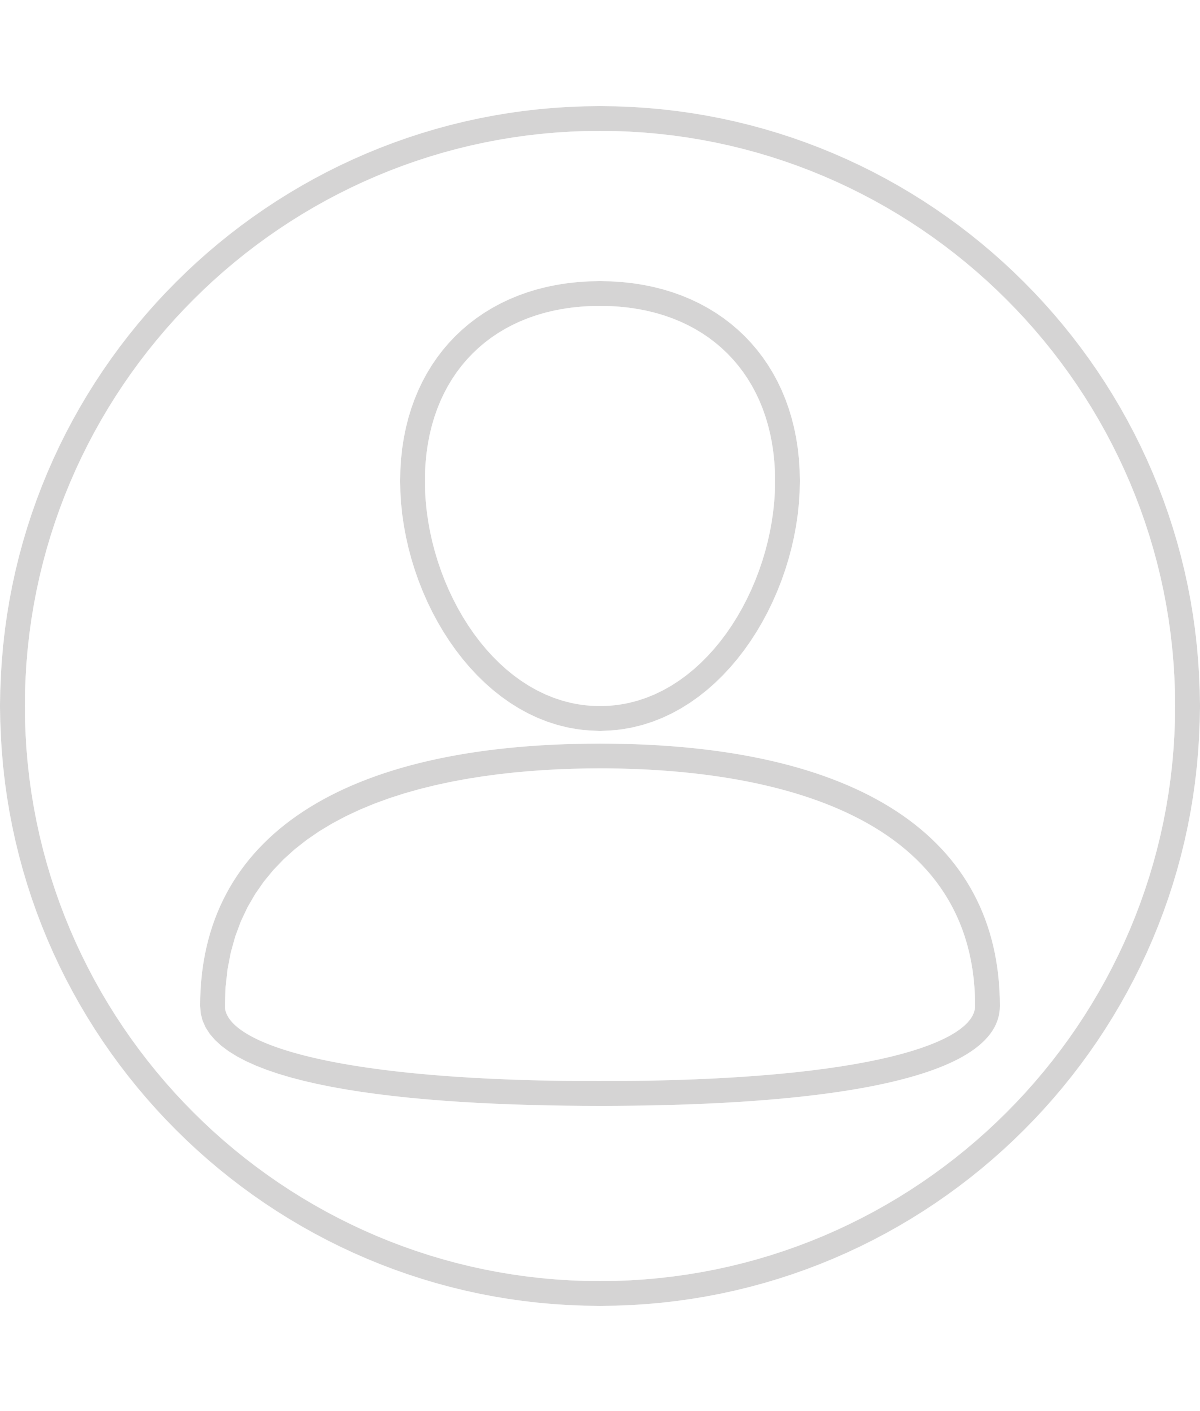 placeholder icon used in lieu of a photograph of Kara Molitor